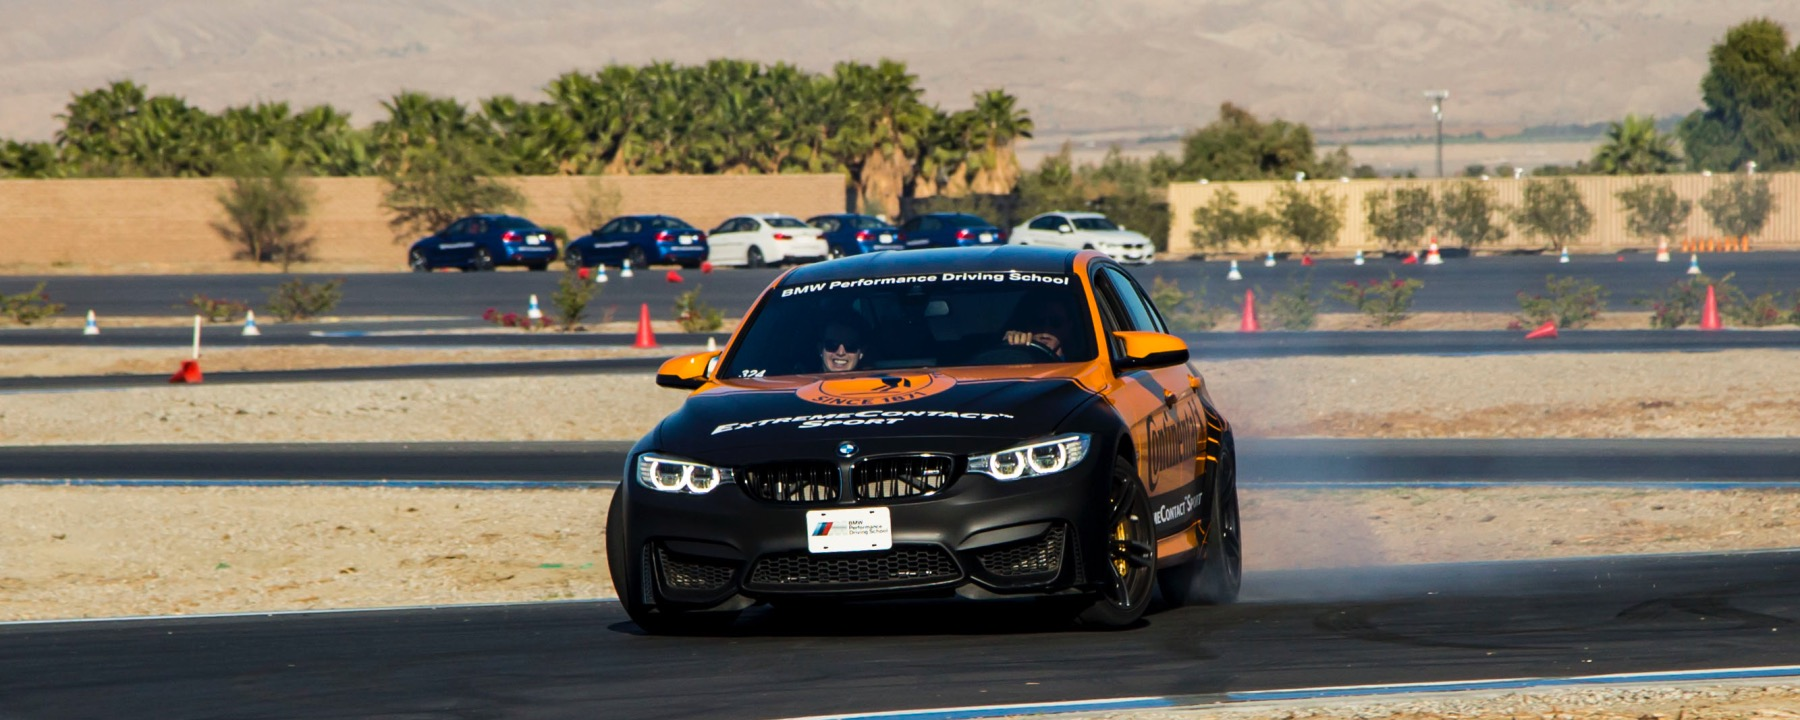 Bmw Of Palm Springs Drive4kids Event Raises 50 000 For